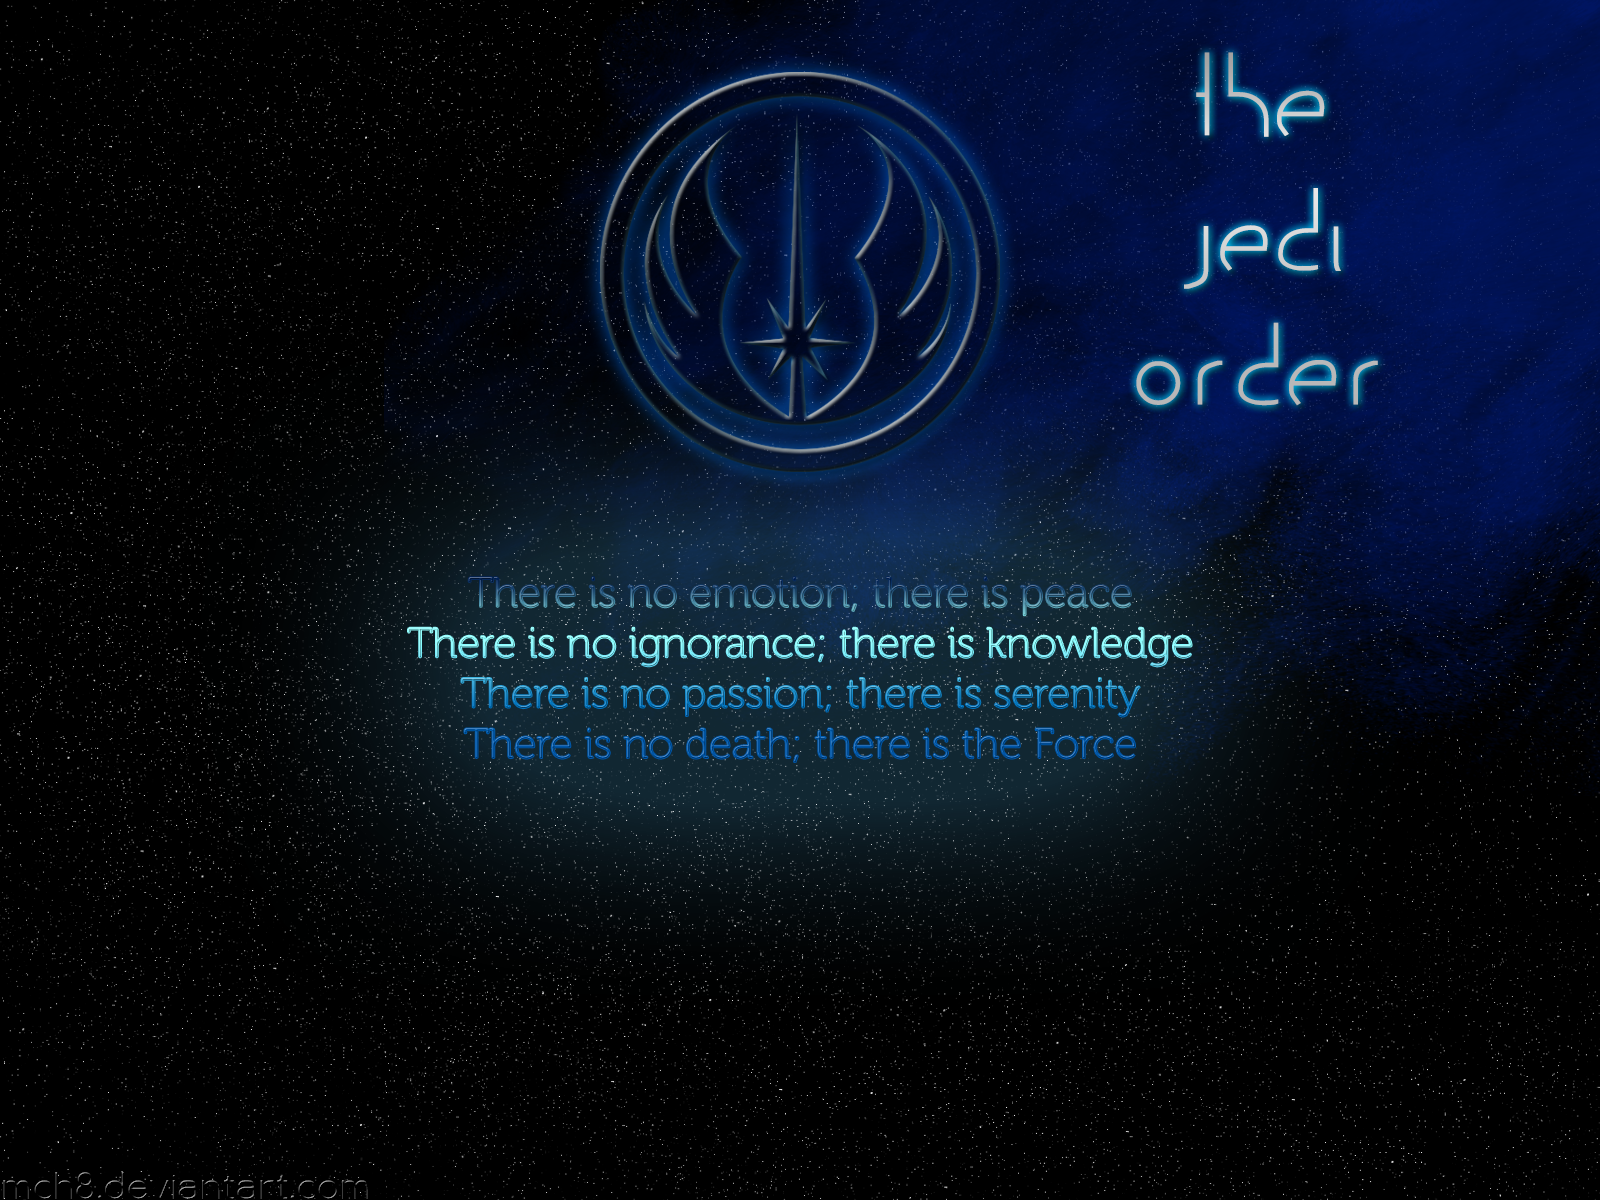 Jedi Order Wallpaper - WallpaperSafari